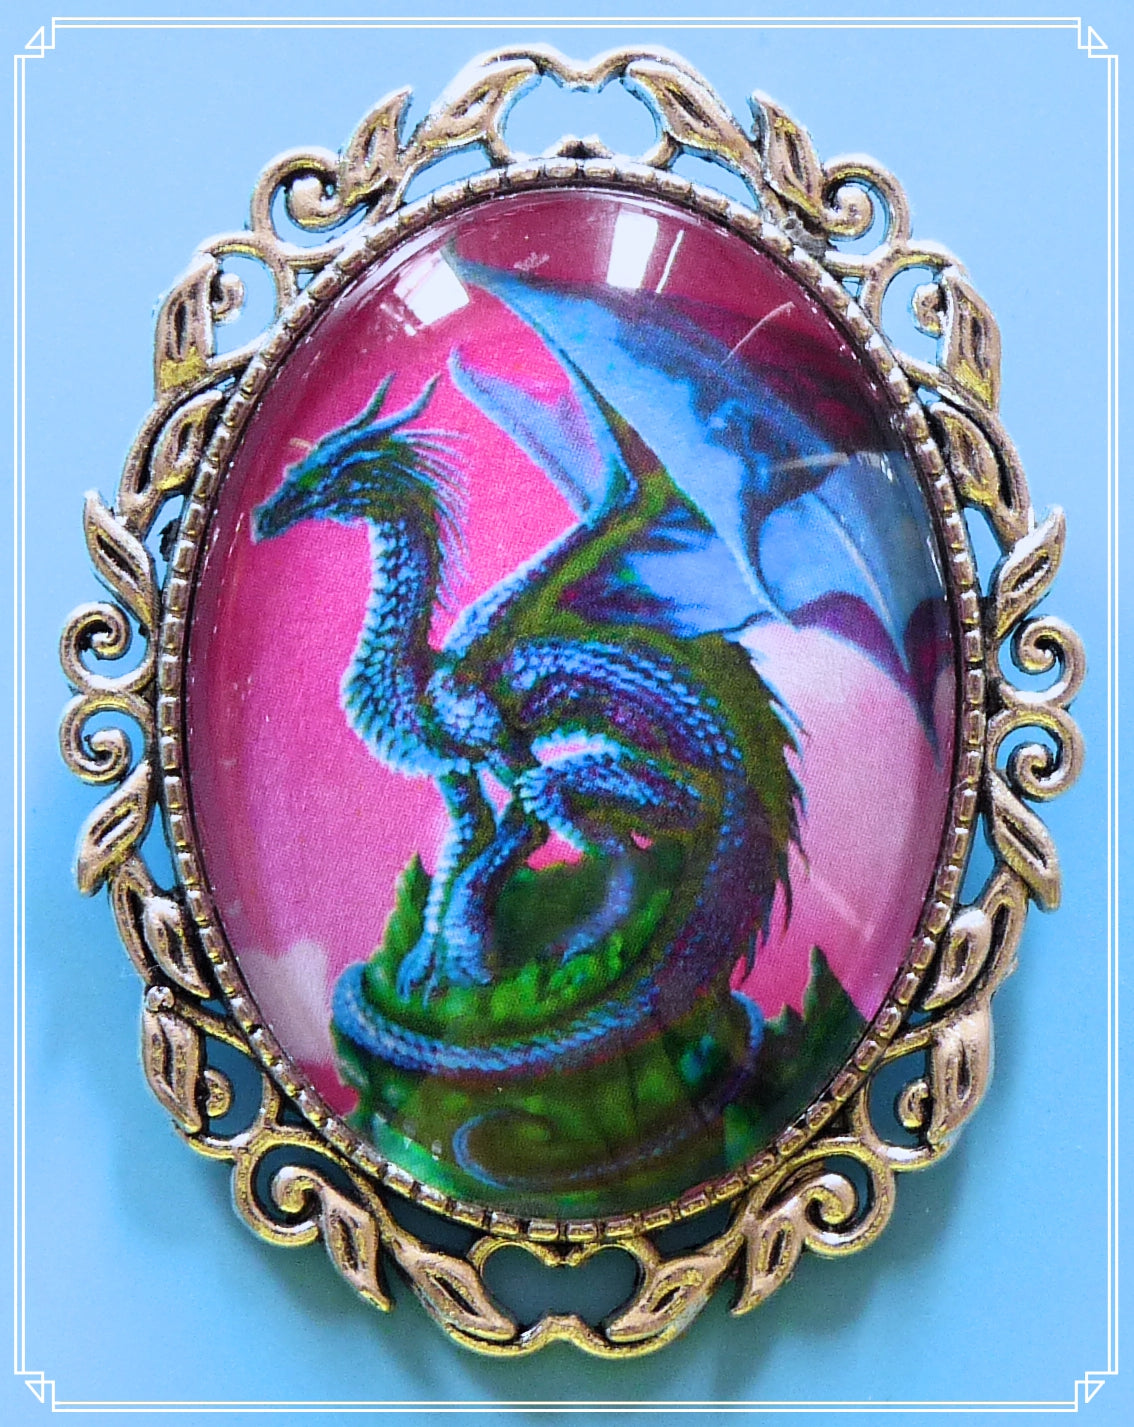 The Thunderdrum dragon brooch is part of my fantasy collection and named after the blue dragon in How to Train Your Dragon.